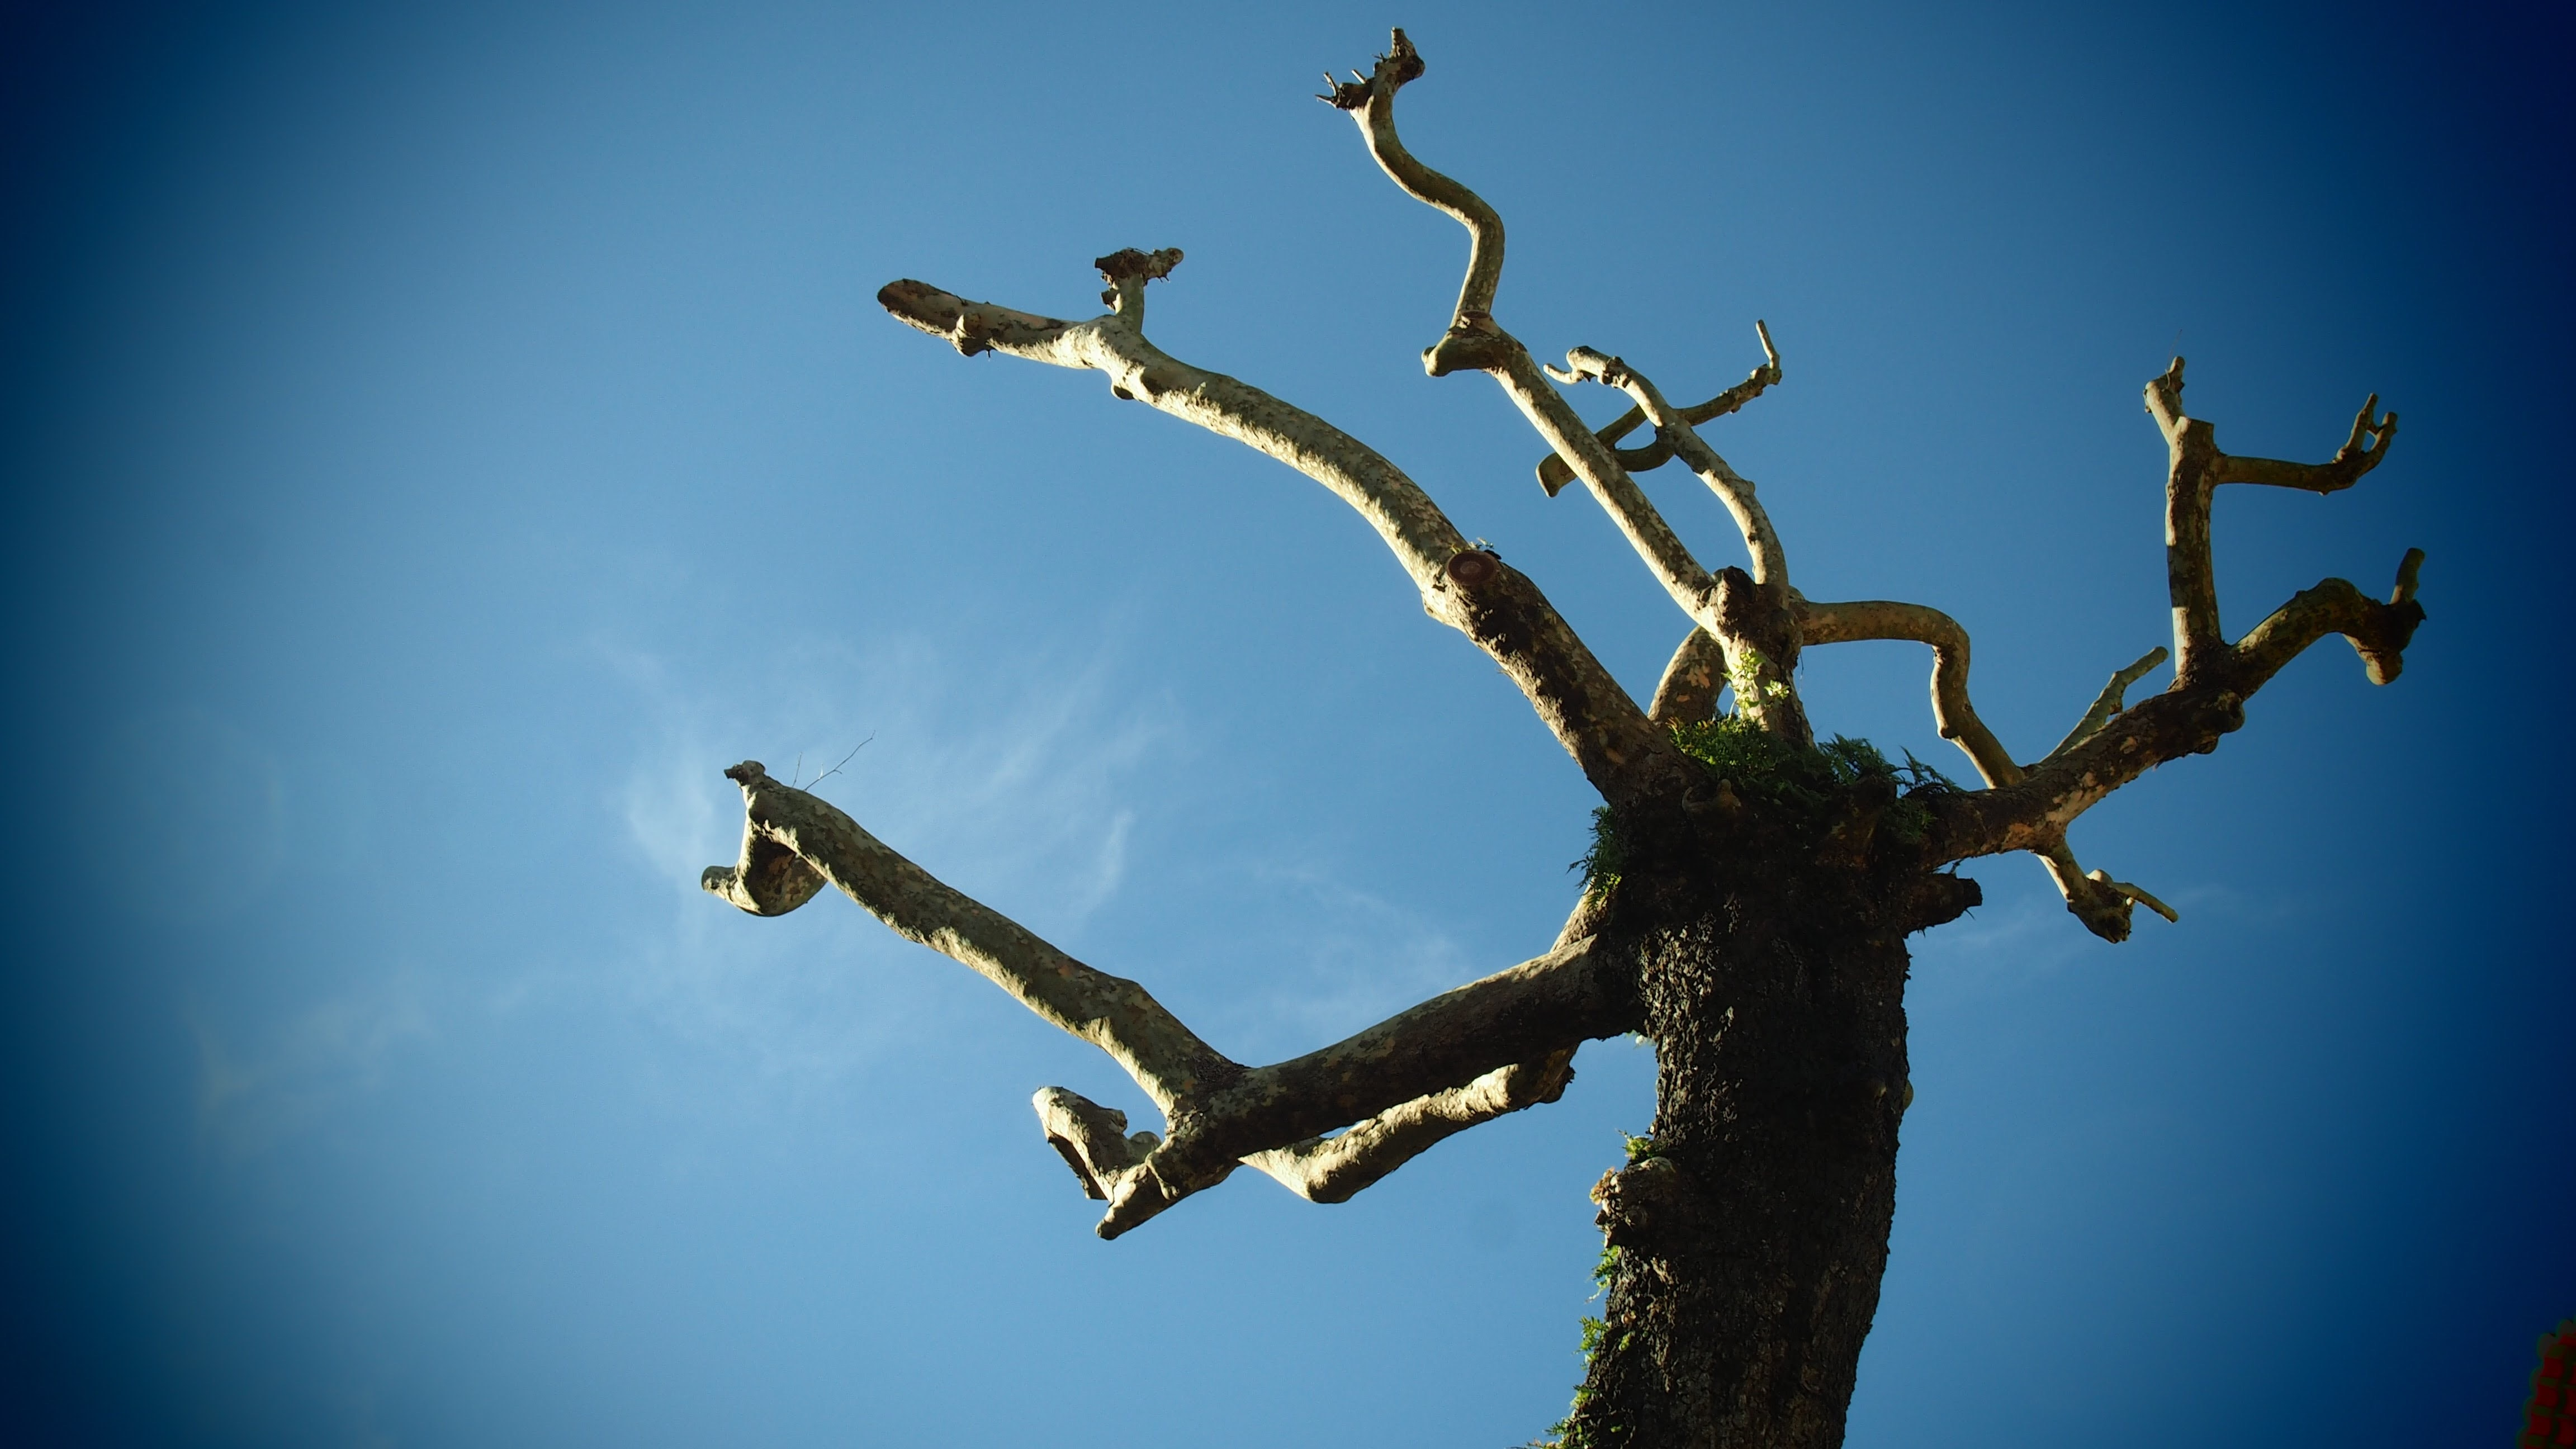 brown barked tree low angle photography